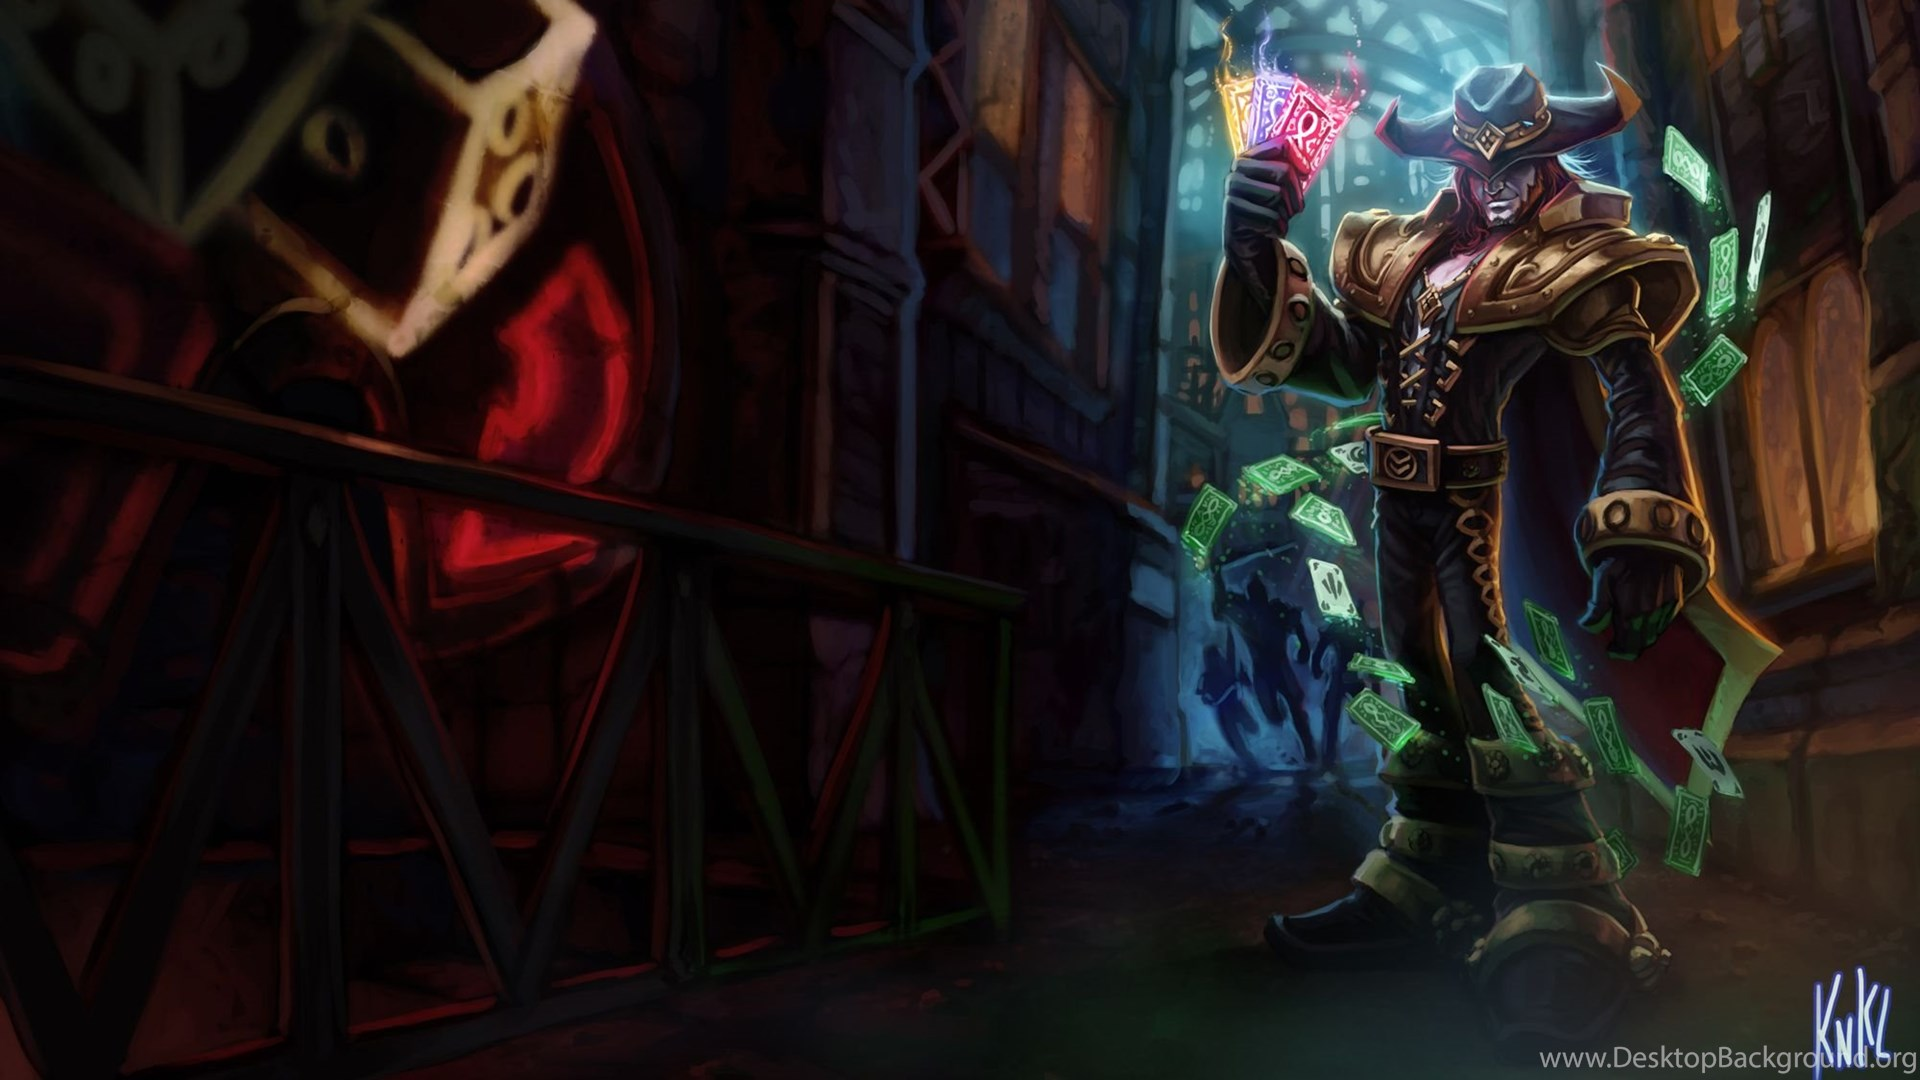 35 Twisted Fate League Of Legends Hd Wallpapers Desktop Background